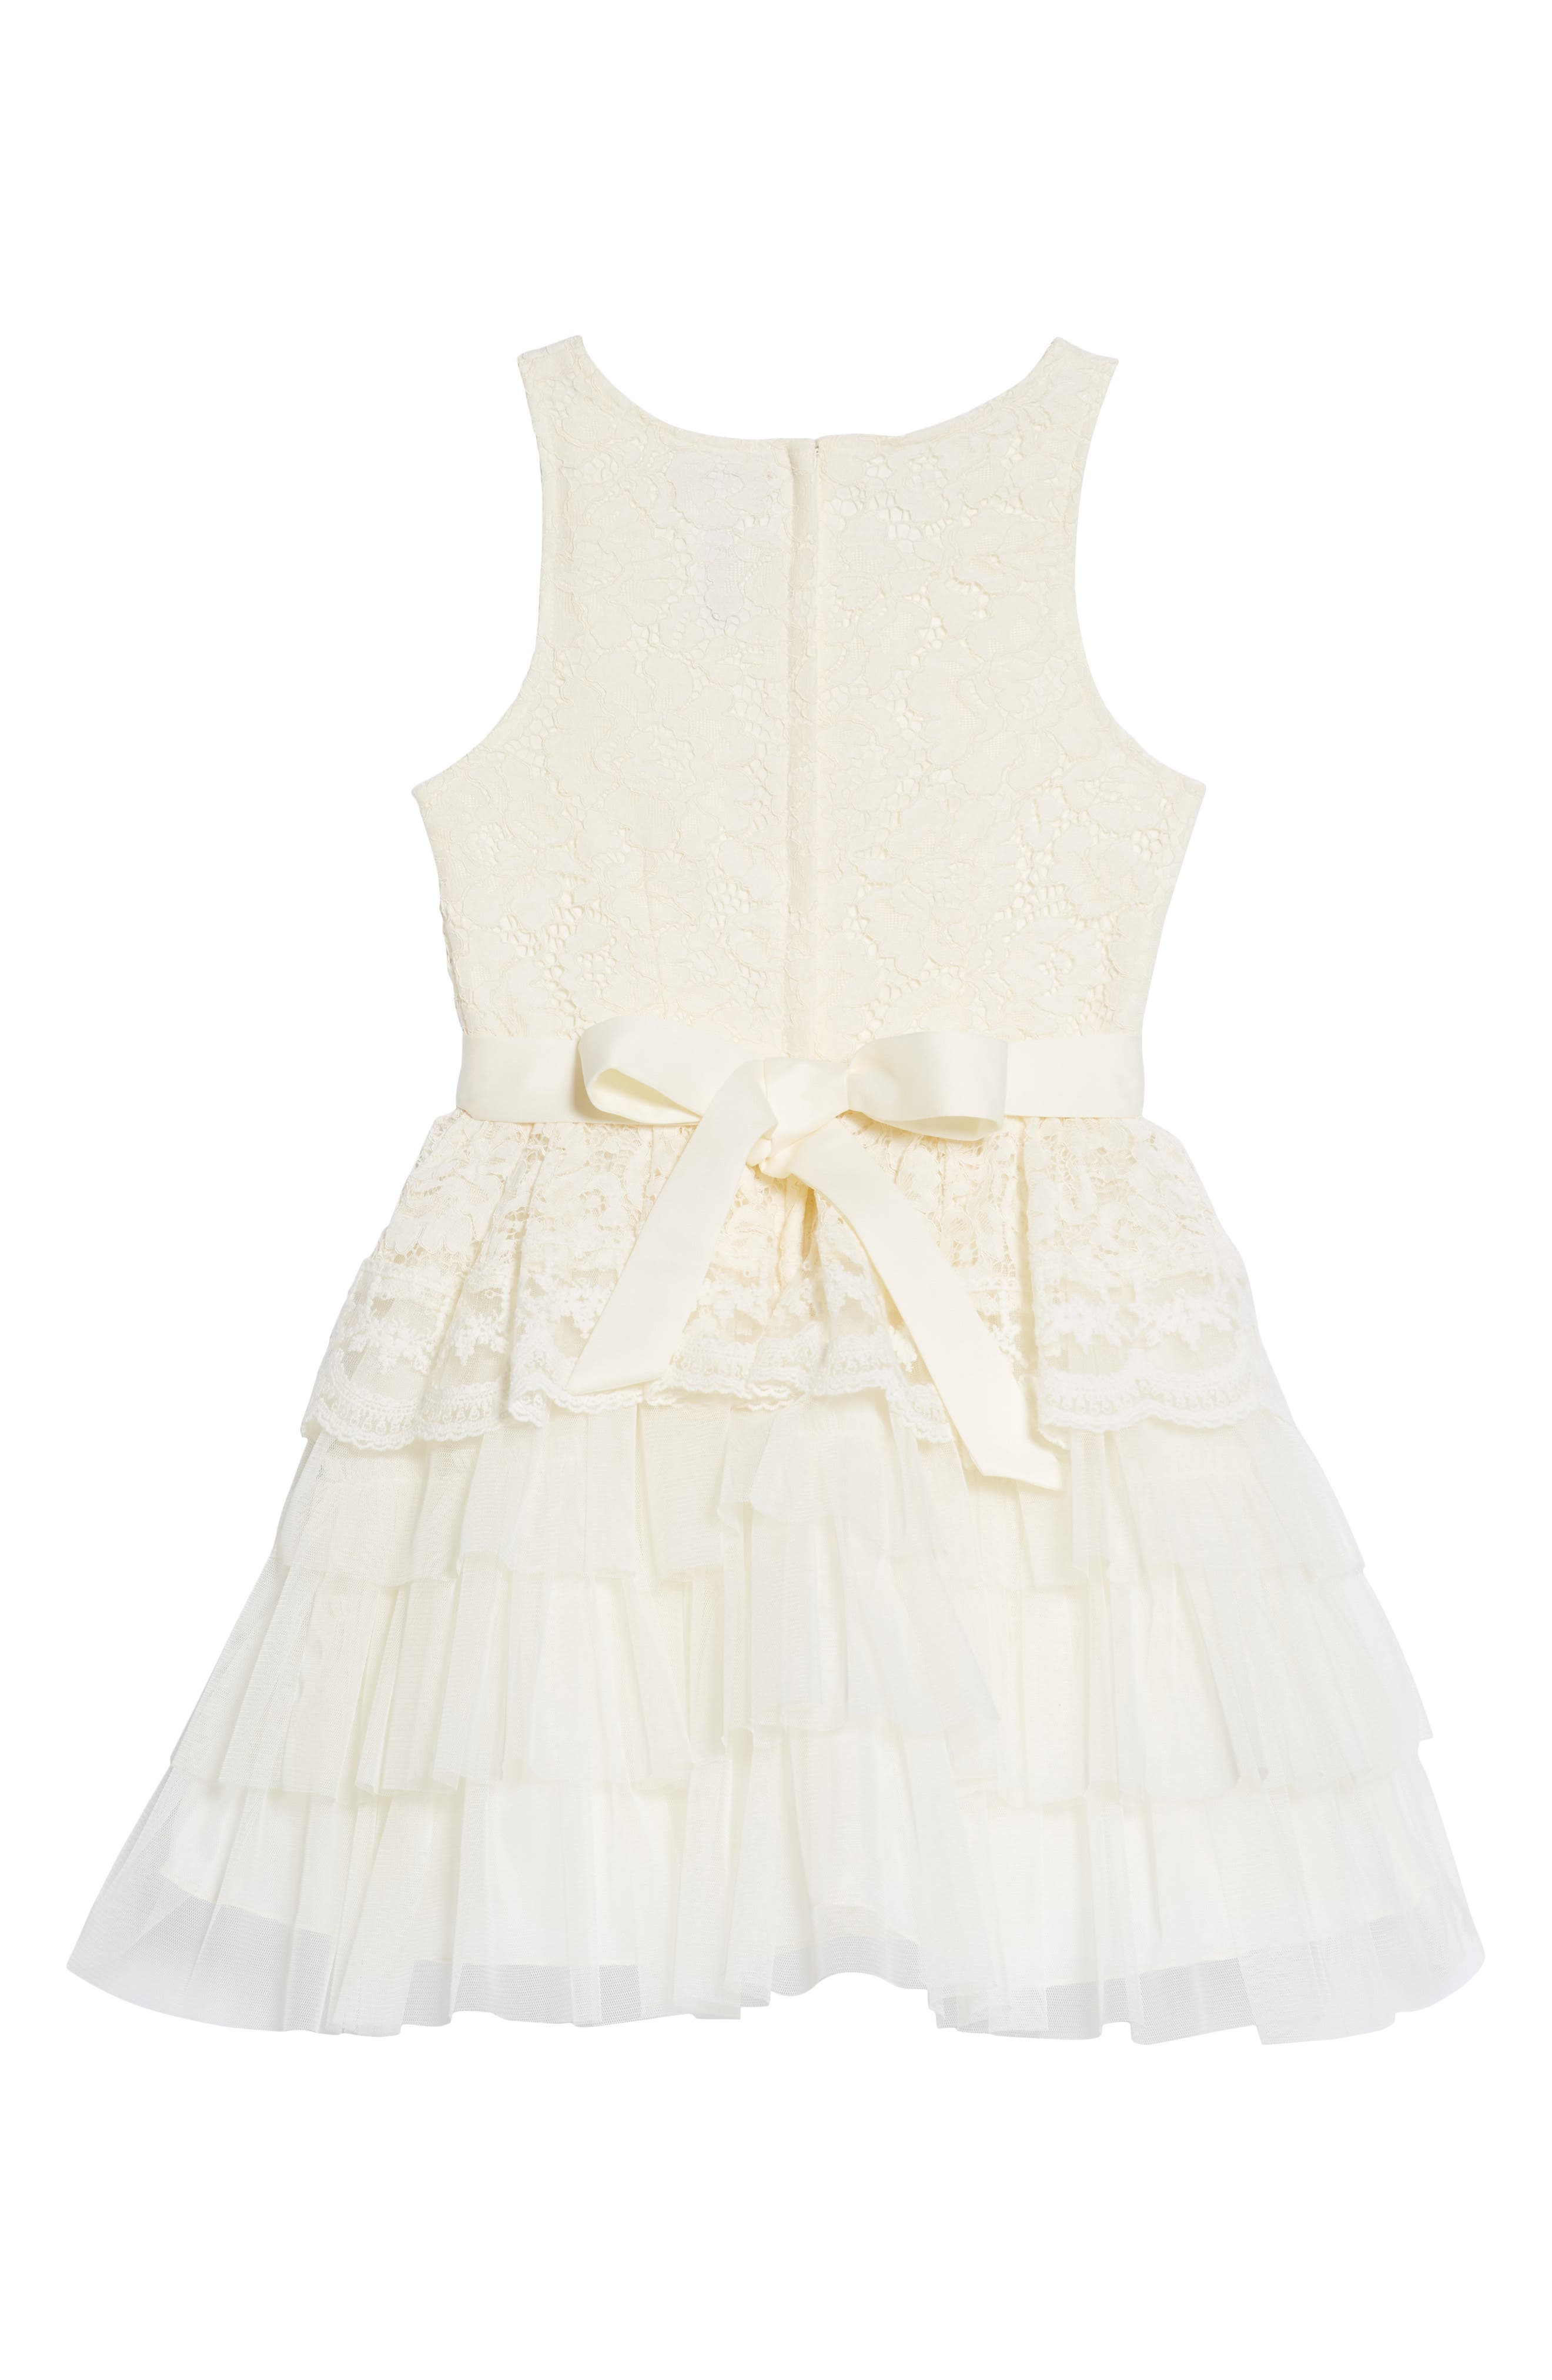 Tiered Lace & Tulle Dress,                             Alternate thumbnail 2, color,                             900